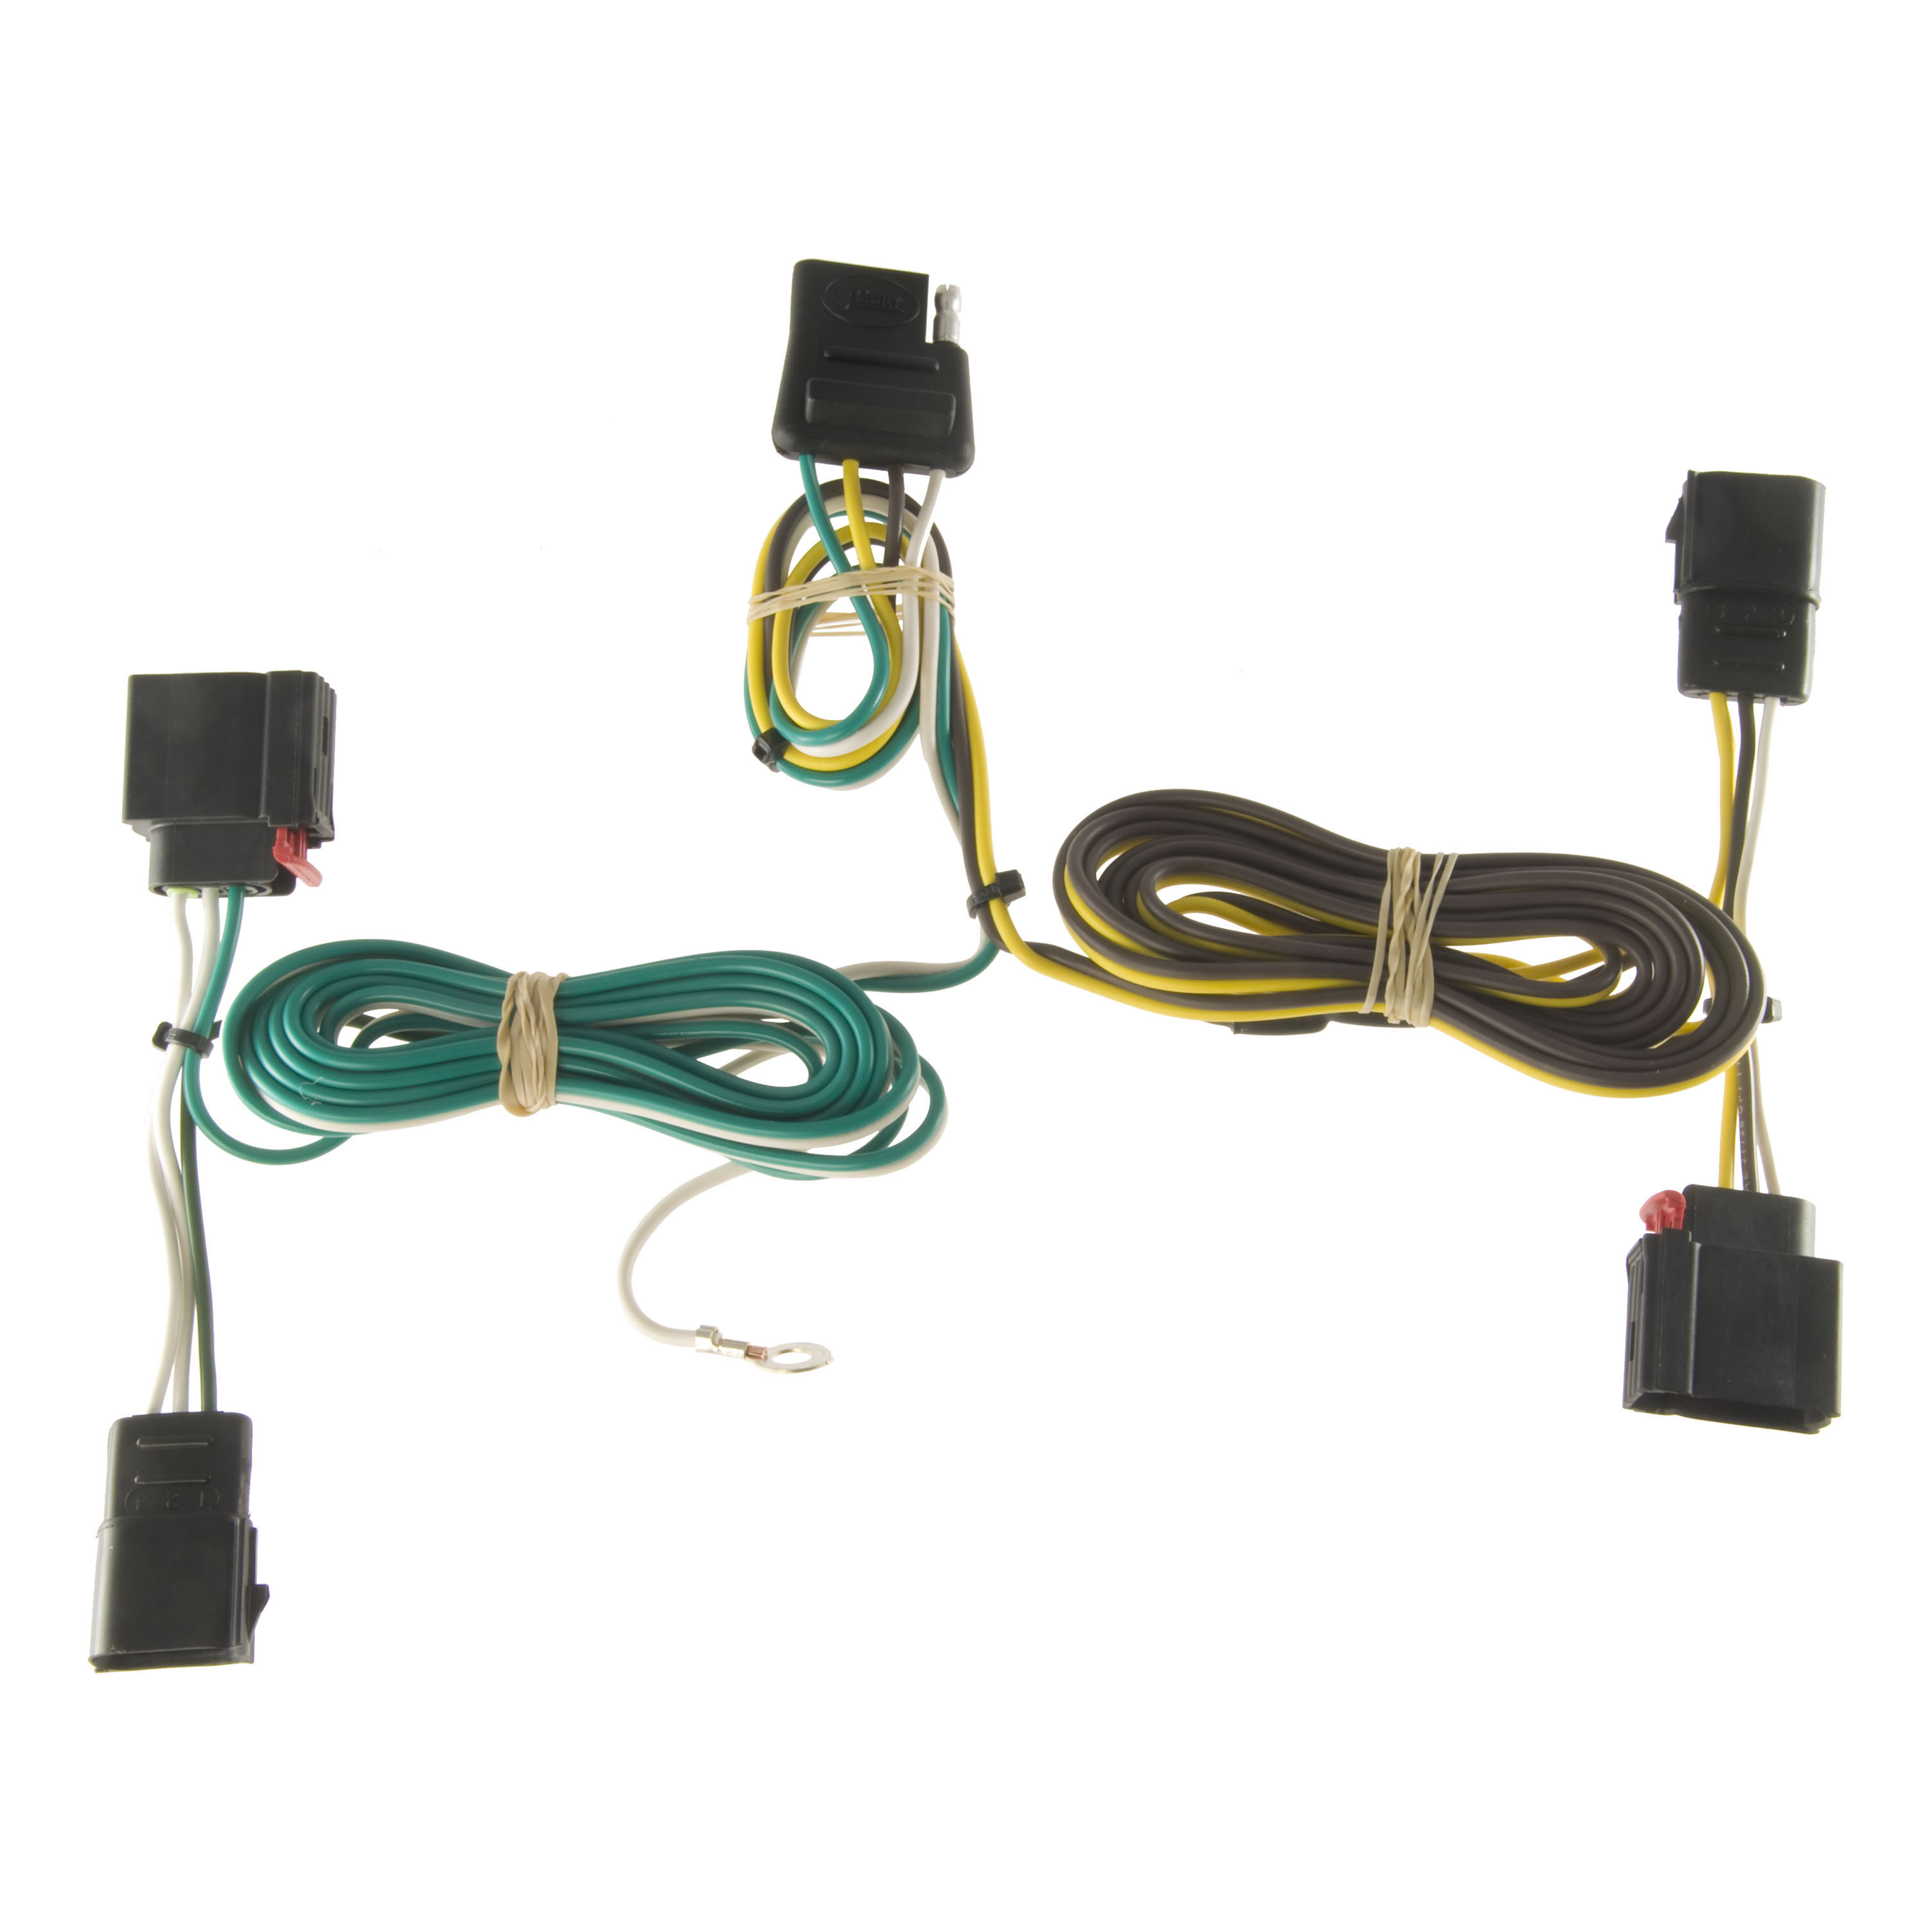 All Products For 2012 Dodge Durango 5th Wheel Wiring Harness Custom 4 Way Flat Output 56133